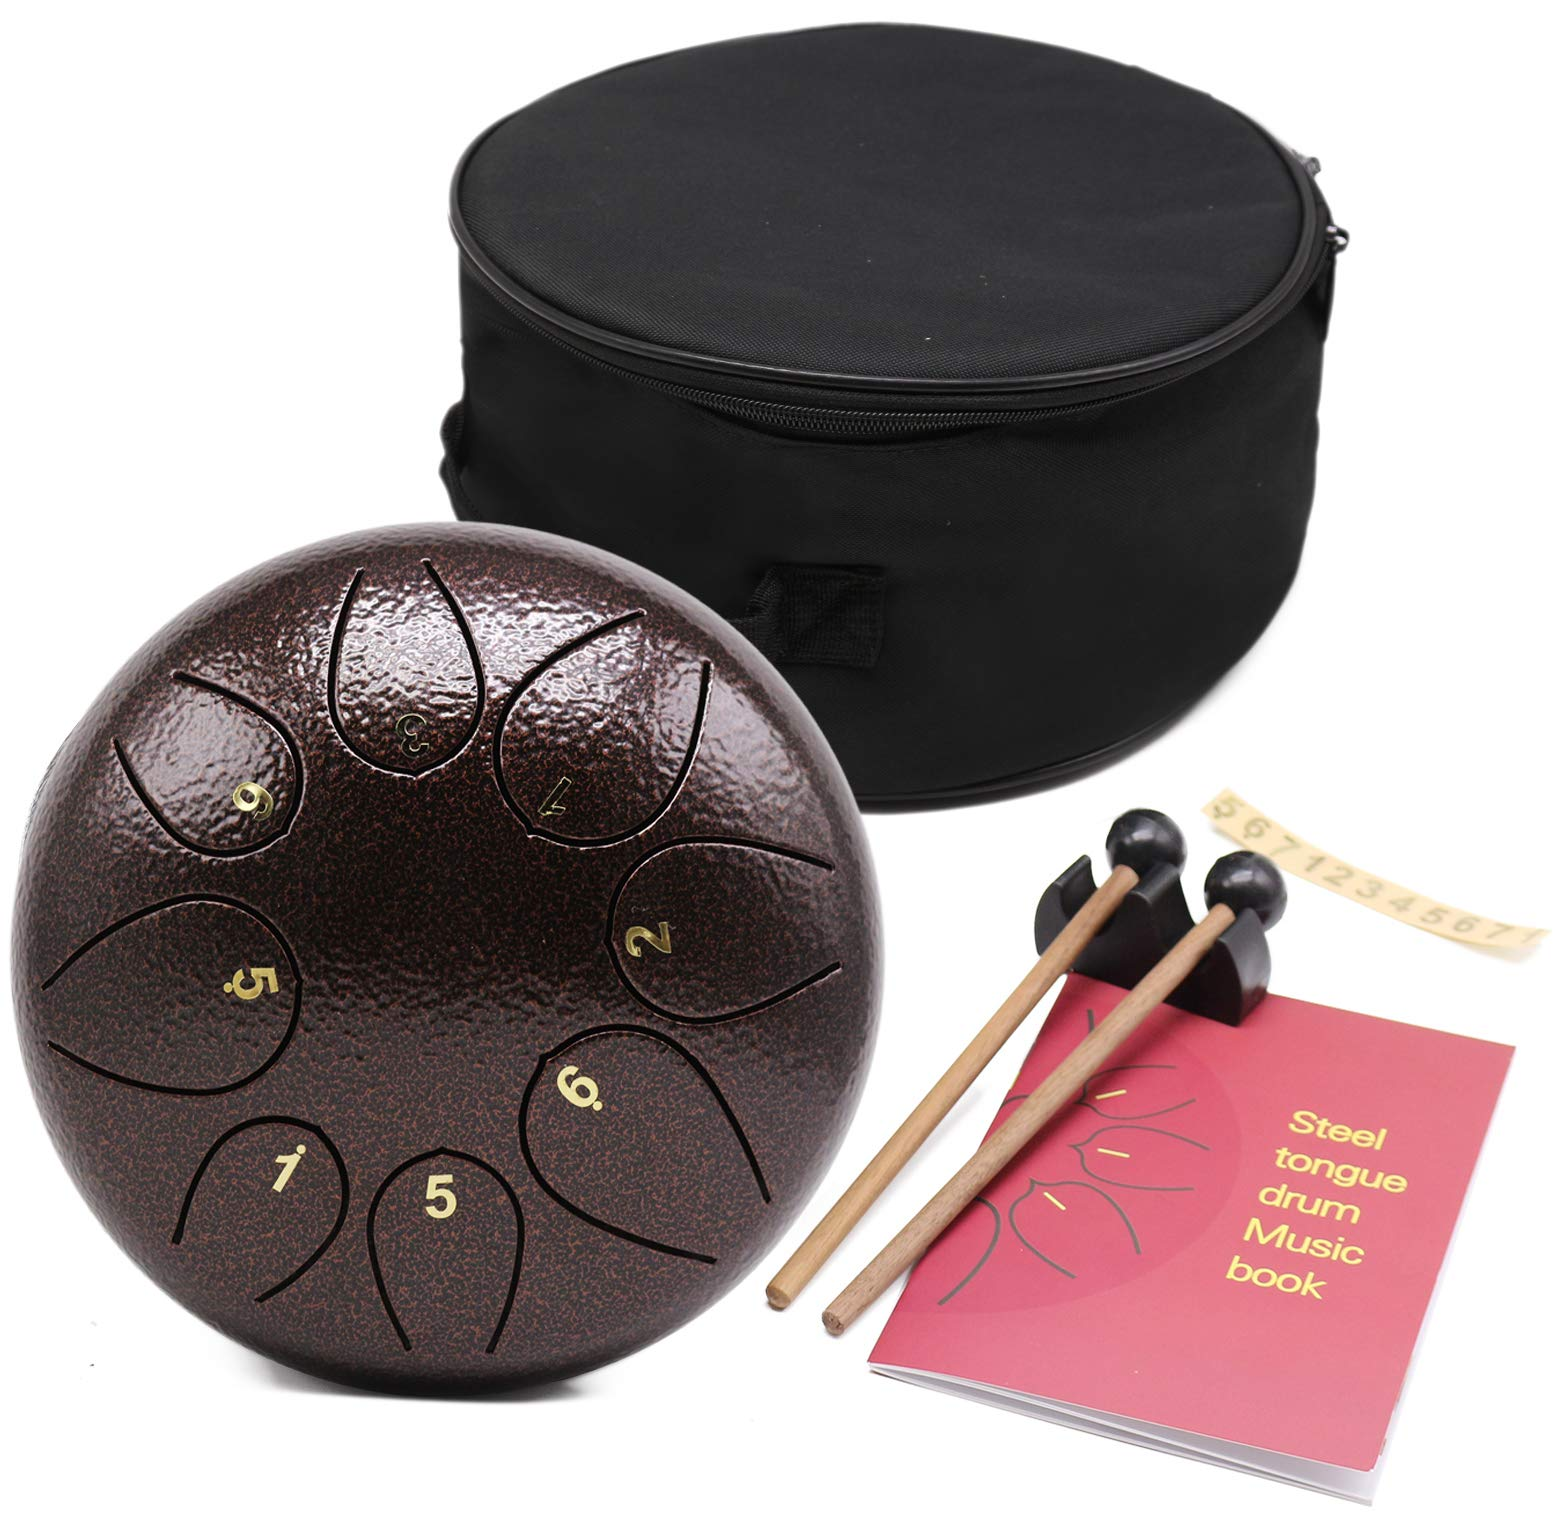 Steel Tongue Drum - 8 Notes 8 inches - Percussion Instrument -Handpan Drum with Bag, Music Book, Mallets, Finger Picks by Lomuty